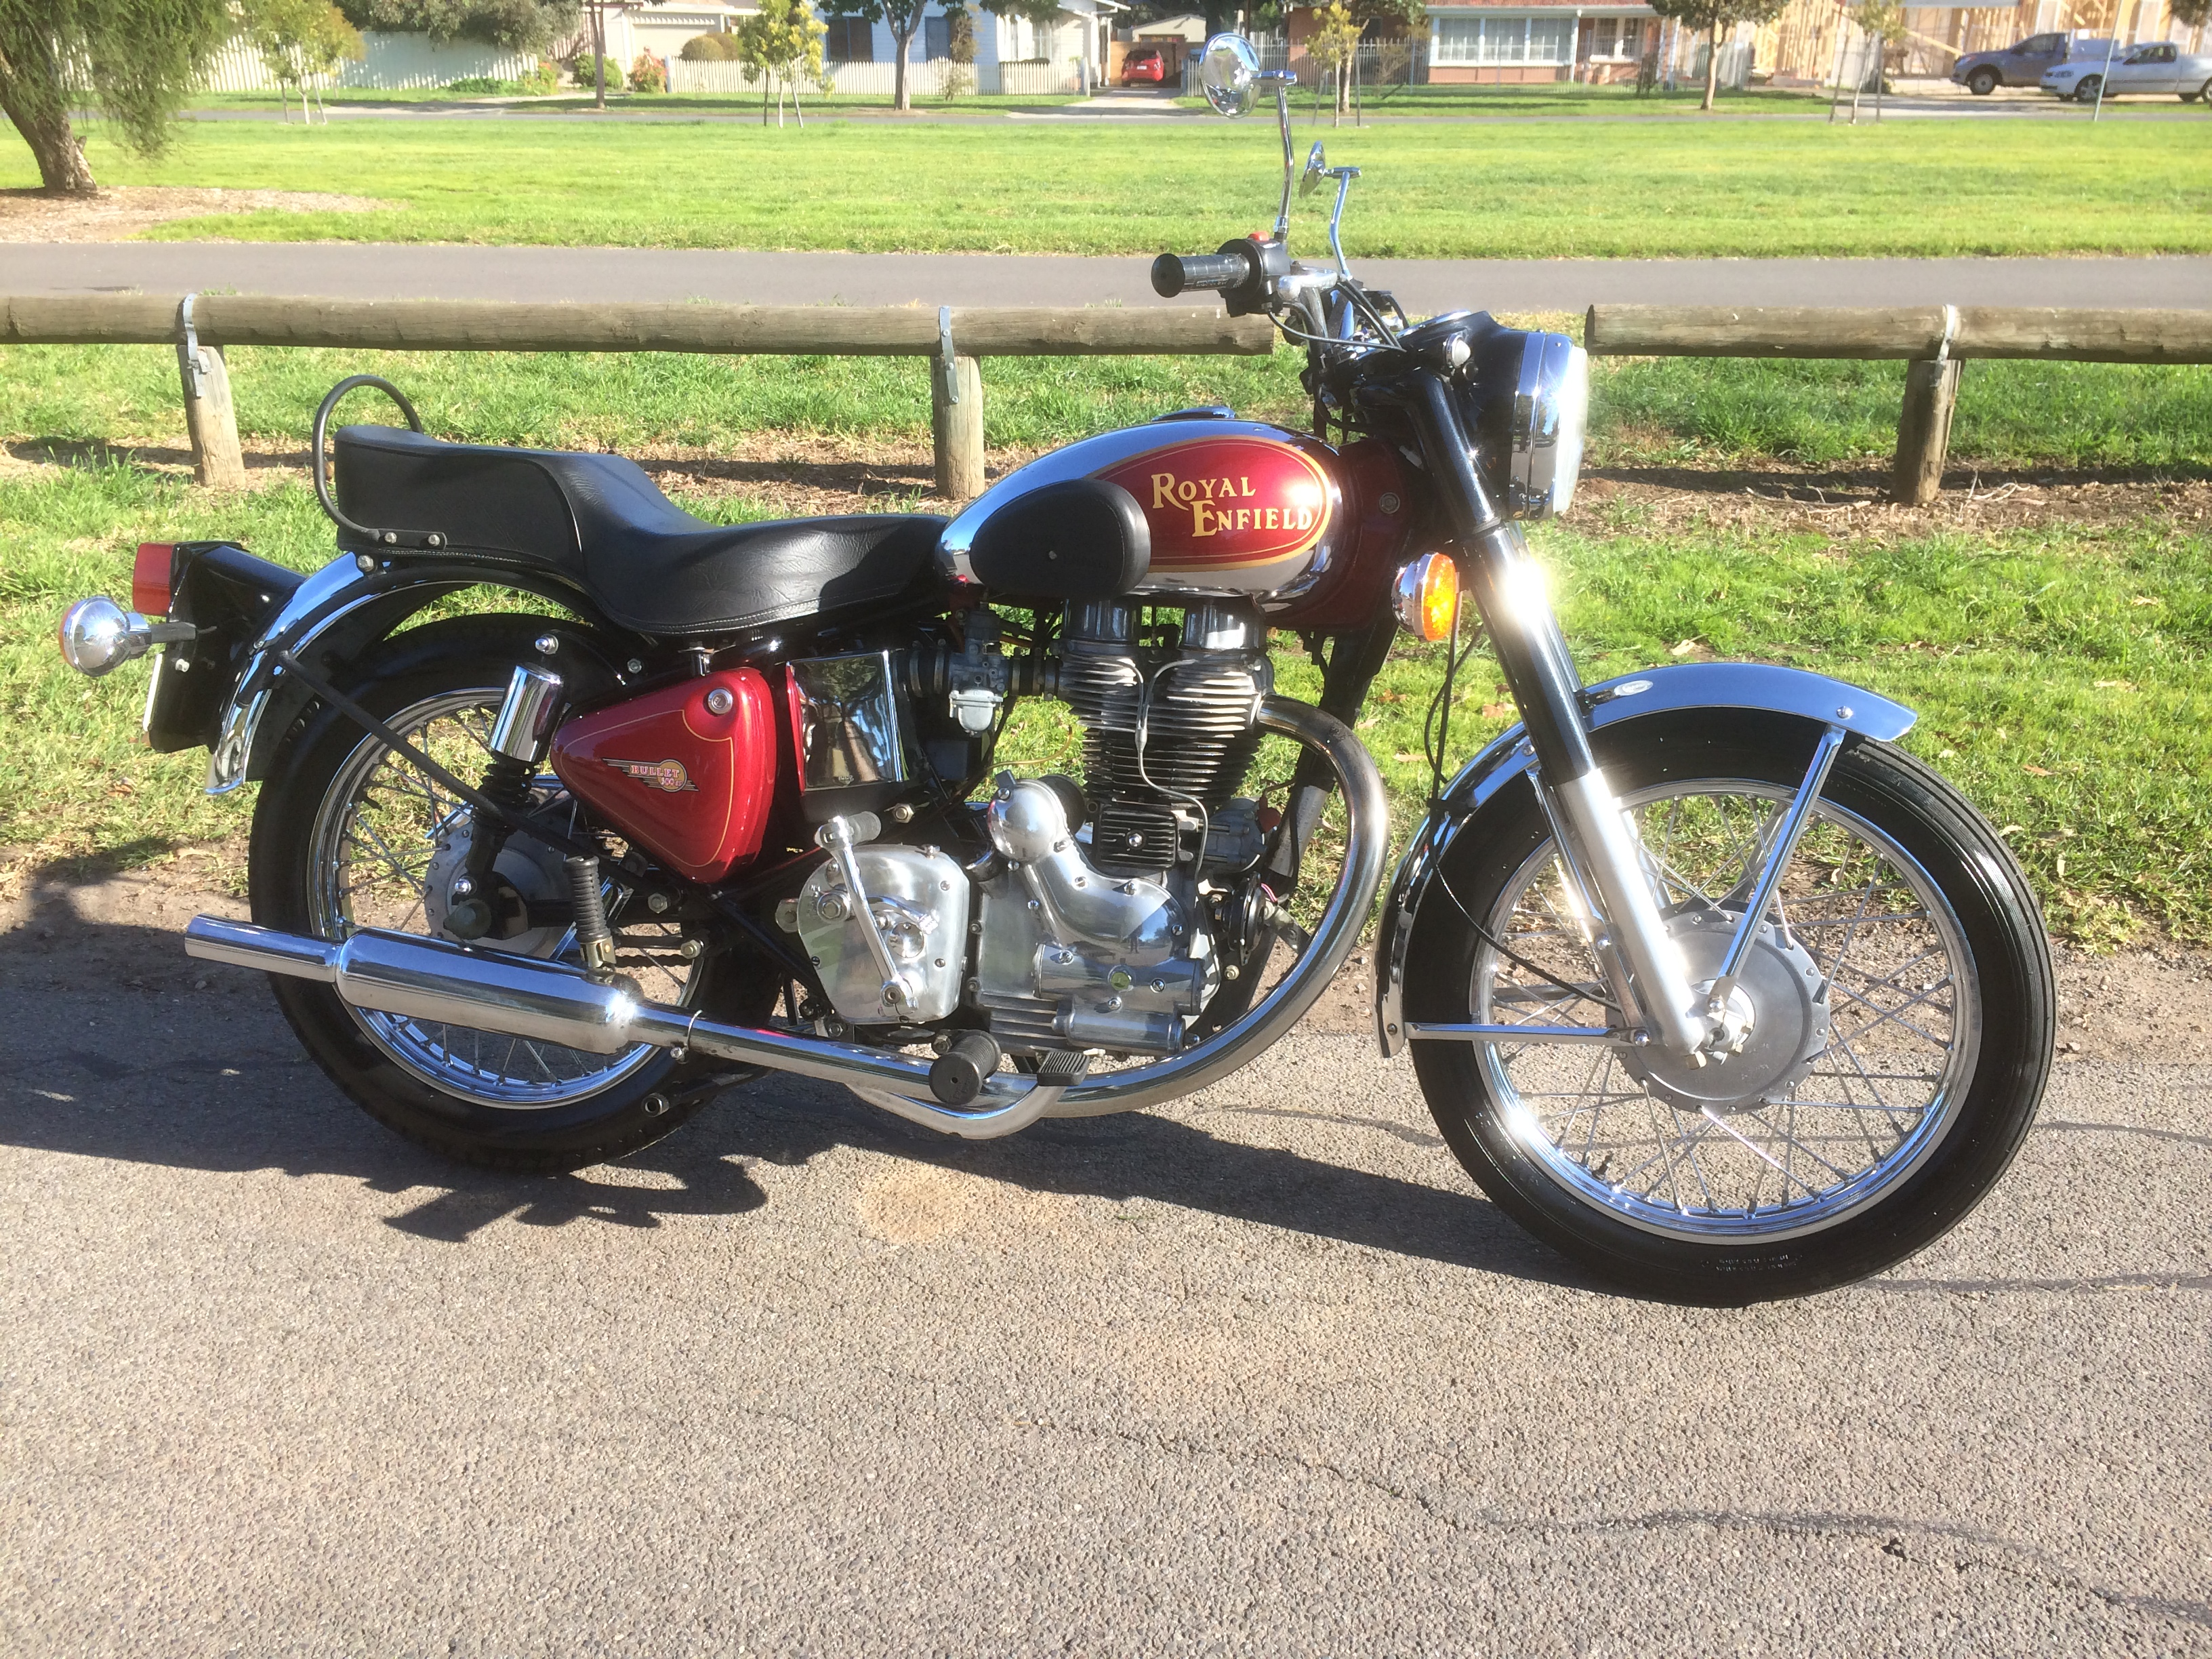 Royal Enfield Bullet 350 Army 1997 images #122760